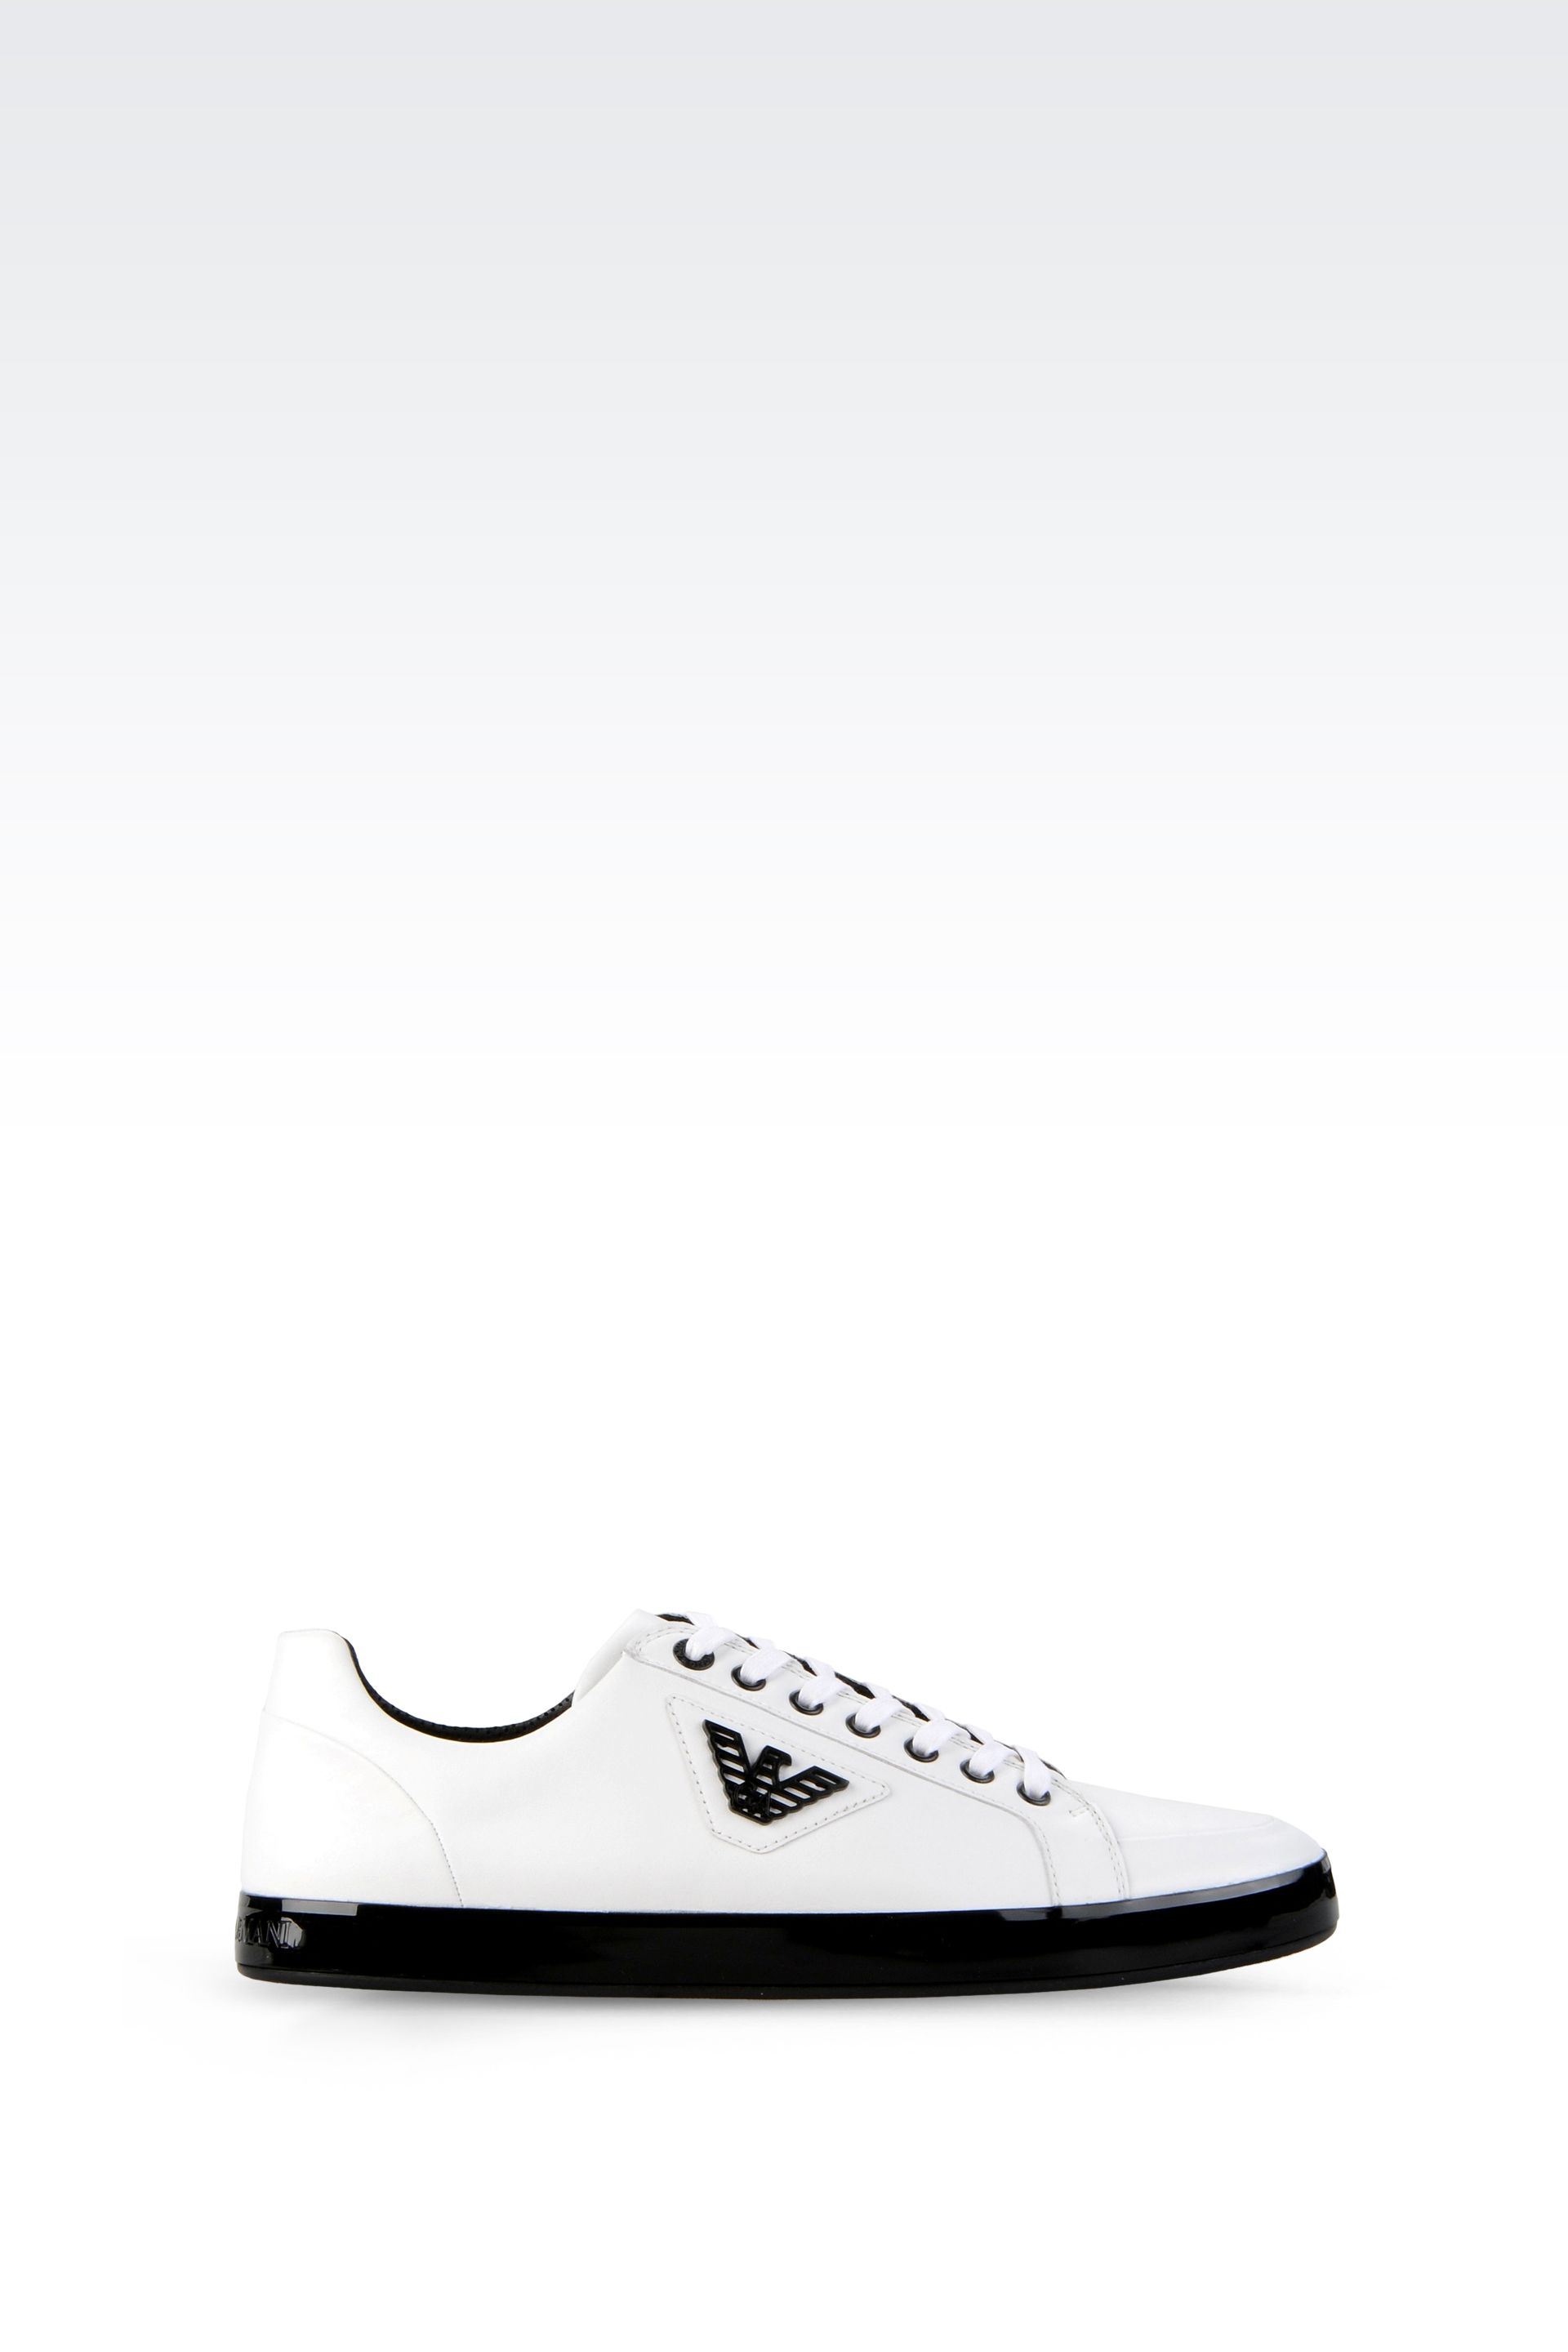 db433bdae Emporio Armani Sneaker in Napa Leather with Logo in White for Men - Lyst